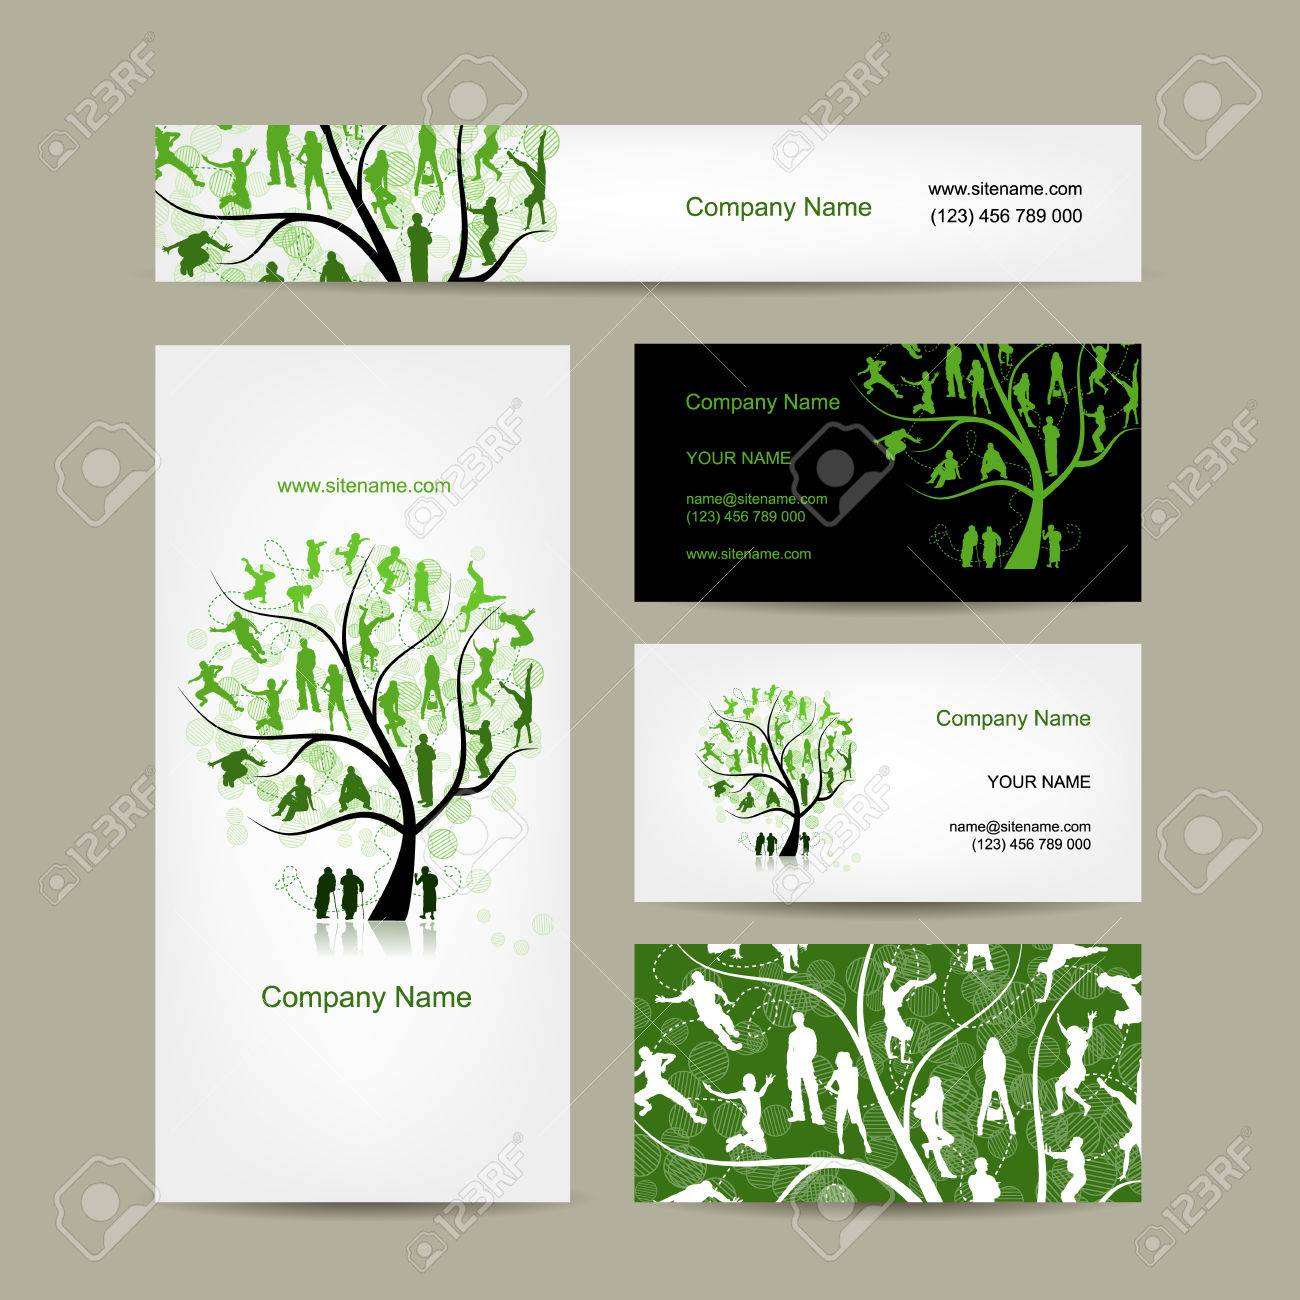 Tree business cards image collections free business cards business cards design family tree vector illustration royalty business cards design family tree vector illustration stock magicingreecefo Images